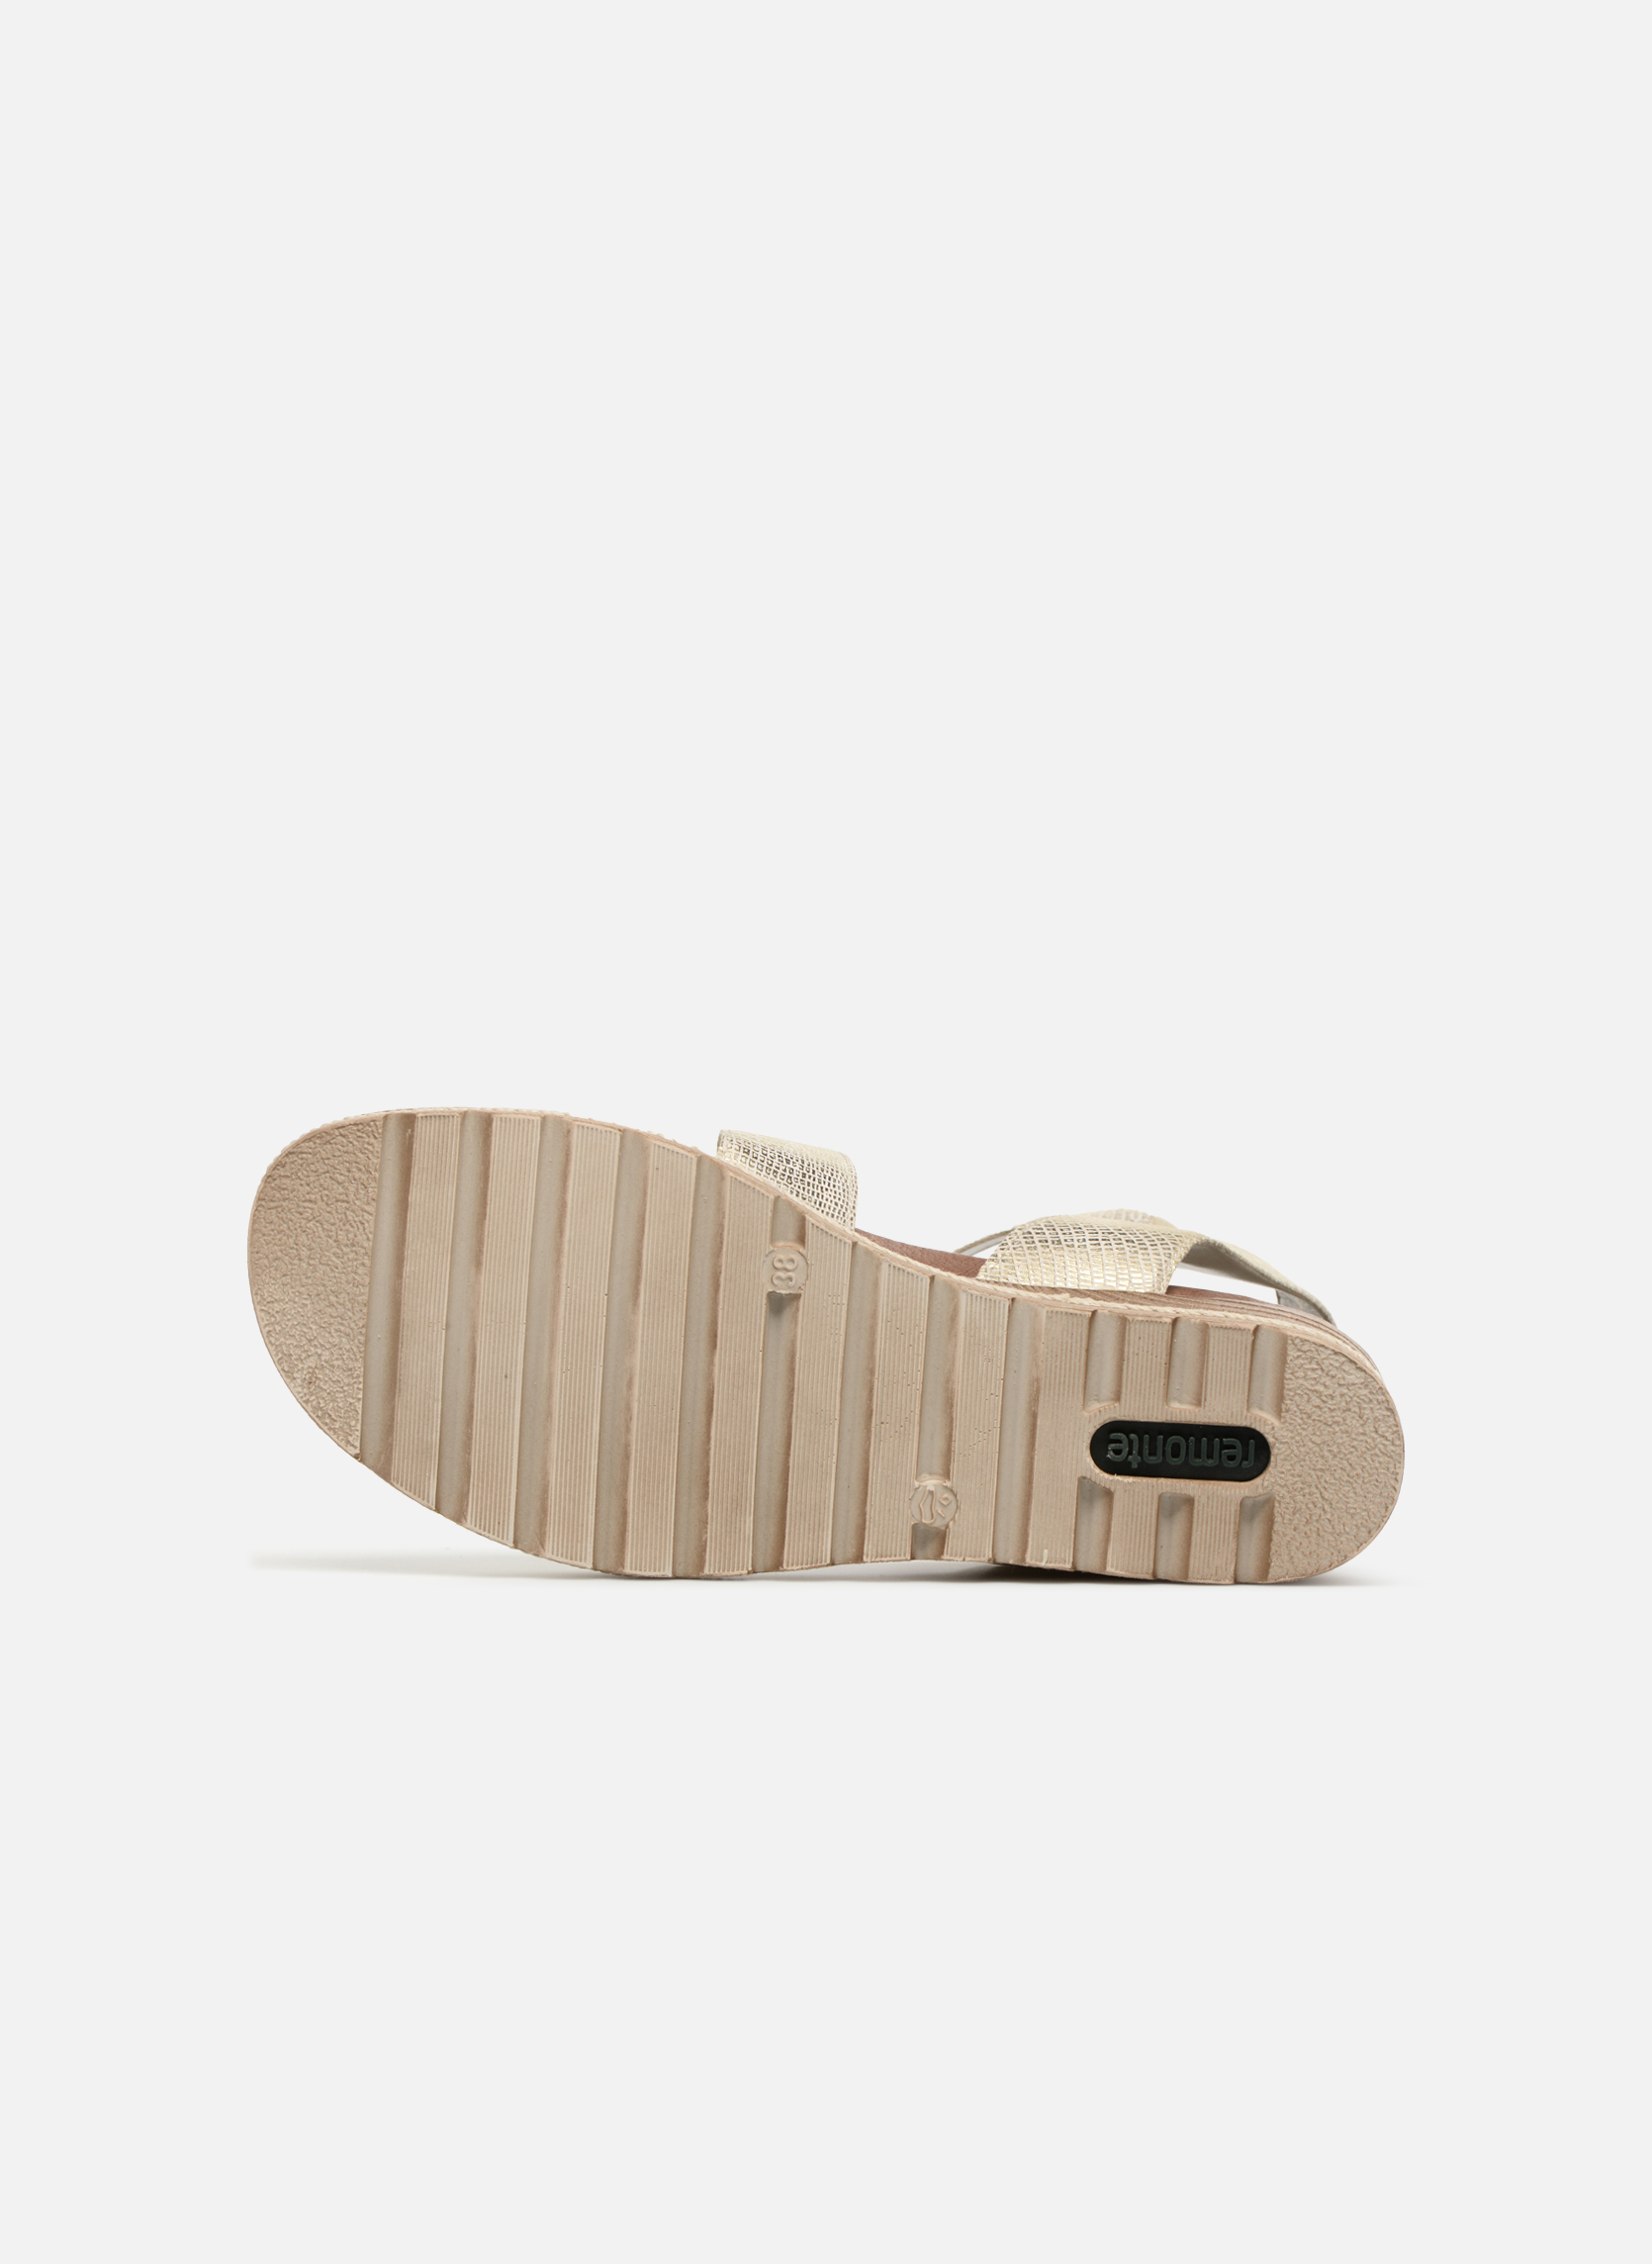 Sandals Remonte Idal D6351 Beige view from above